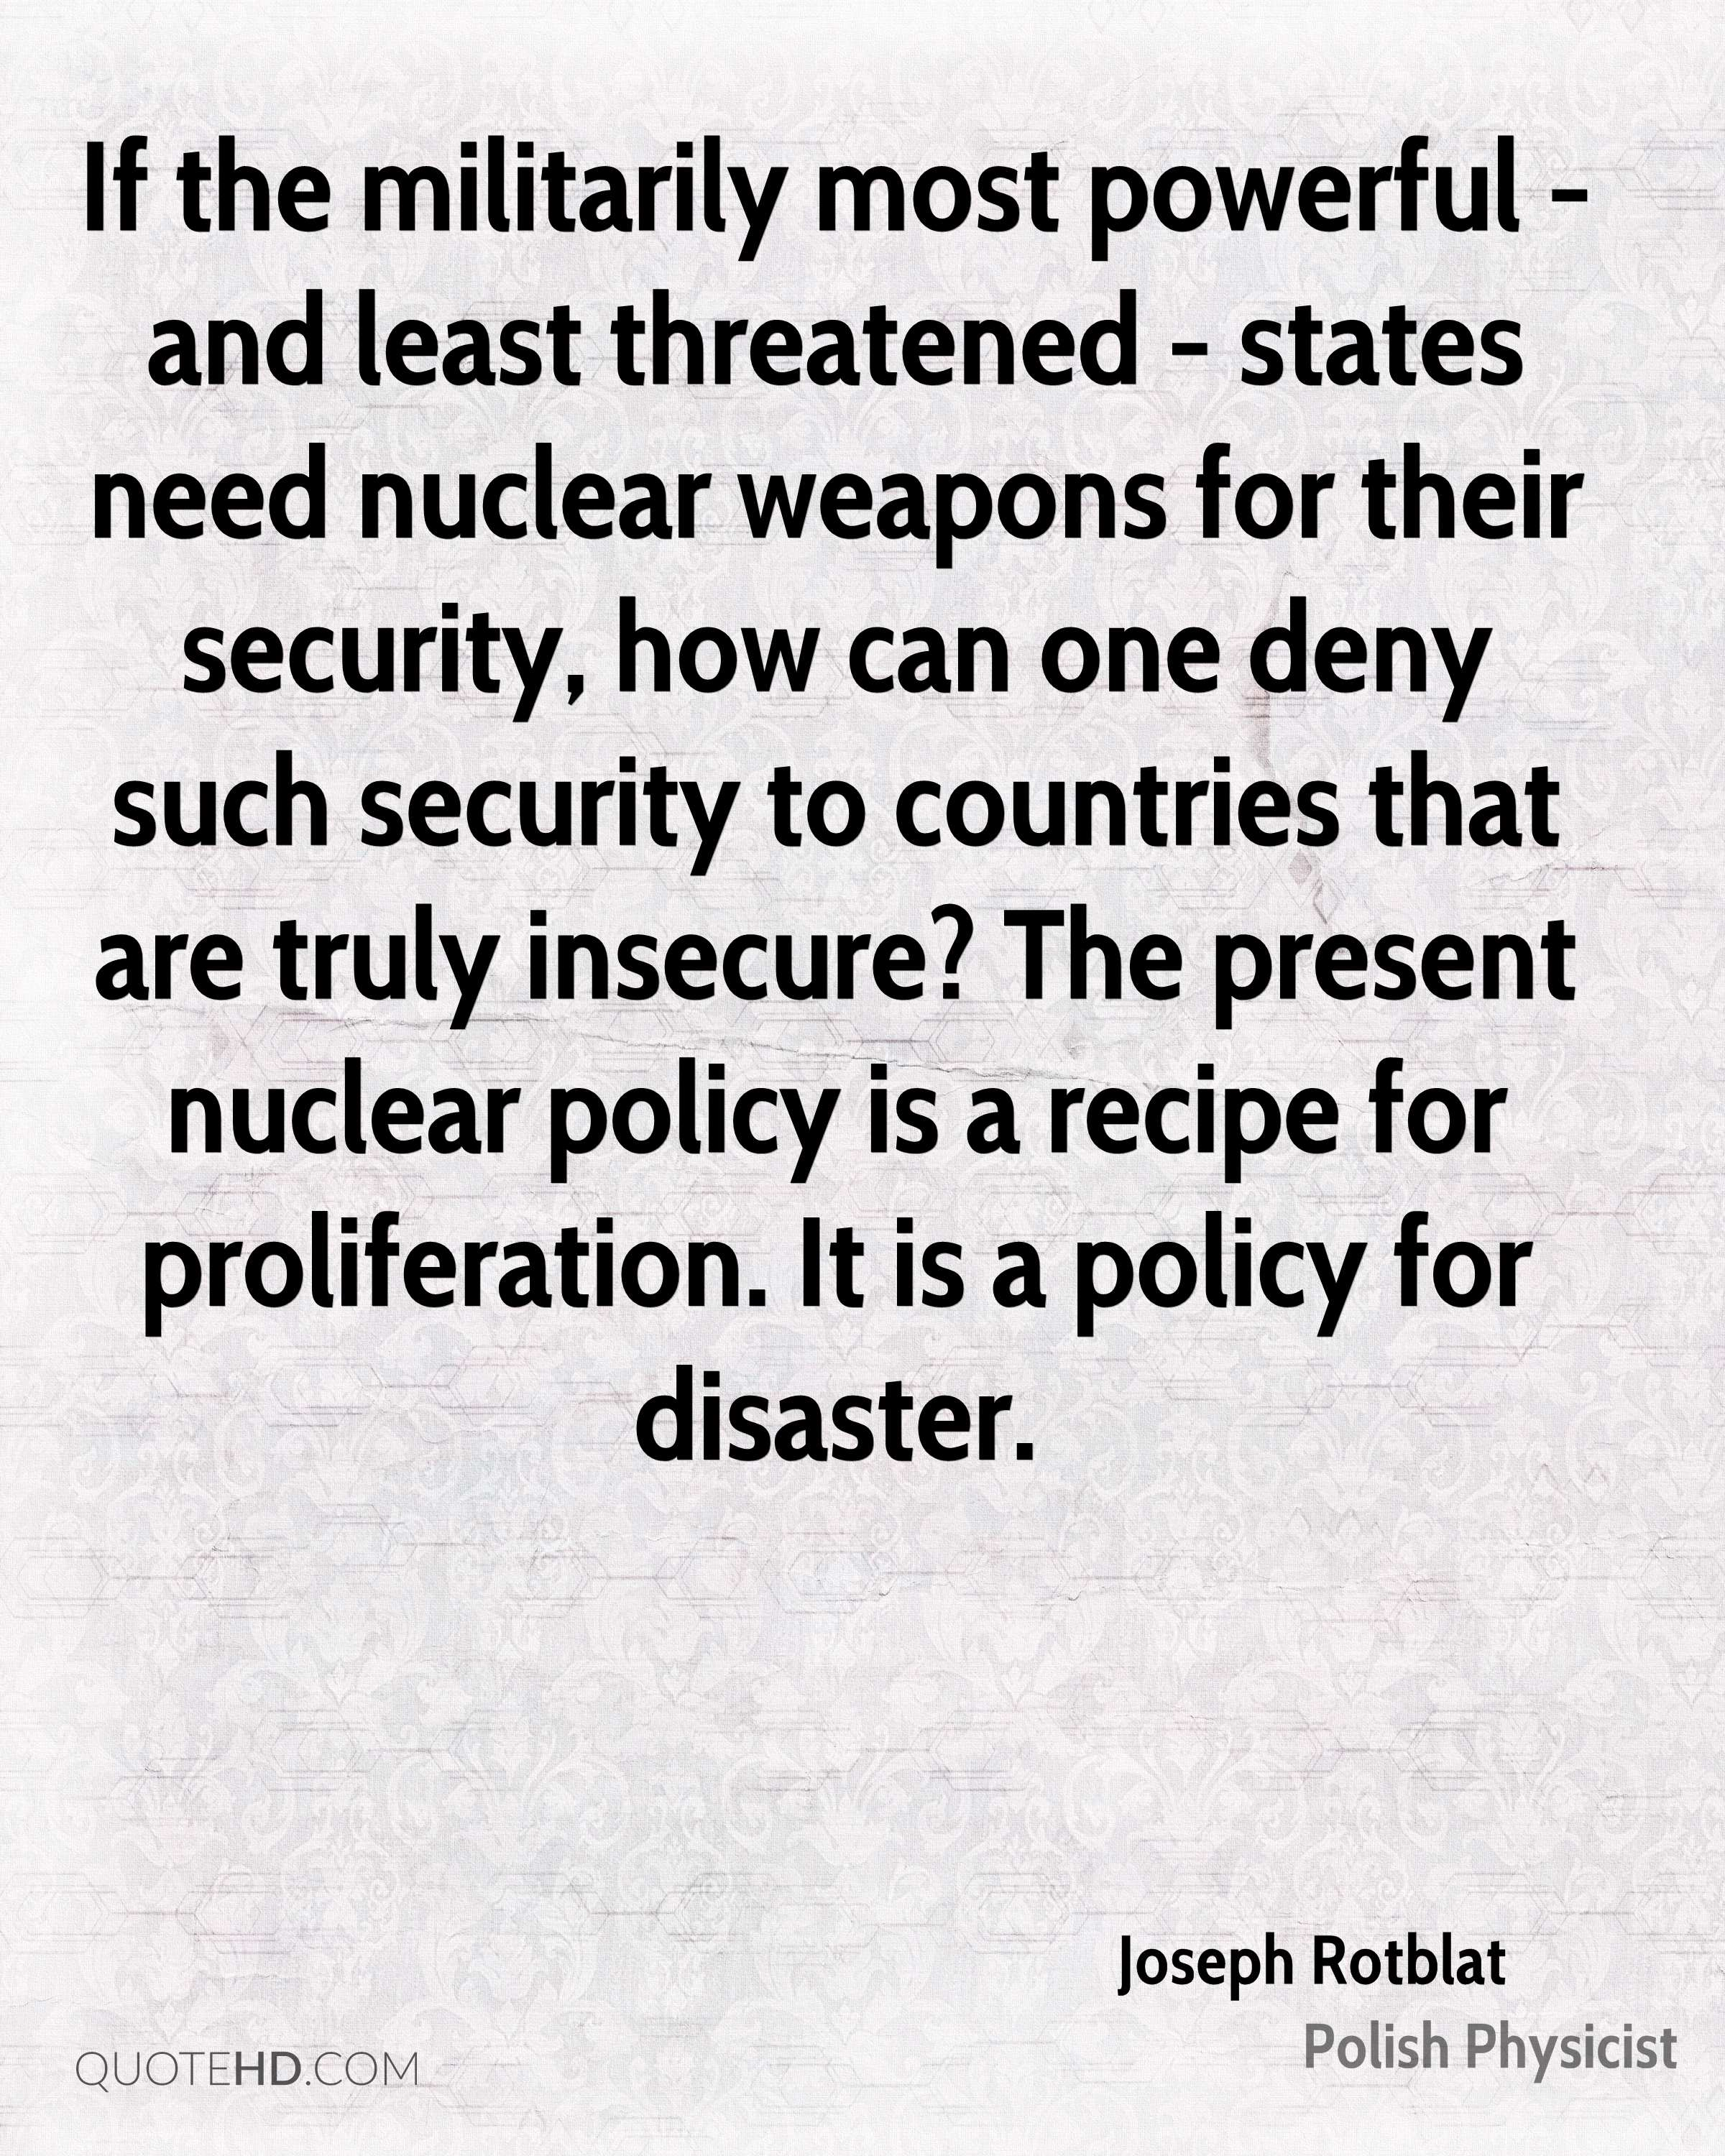 If the militarily most powerful - and least threatened - states need nuclear weapons for their security, how can one deny such security to countries that are truly insecure? The present nuclear policy is a recipe for proliferation. It is a policy for disaster.